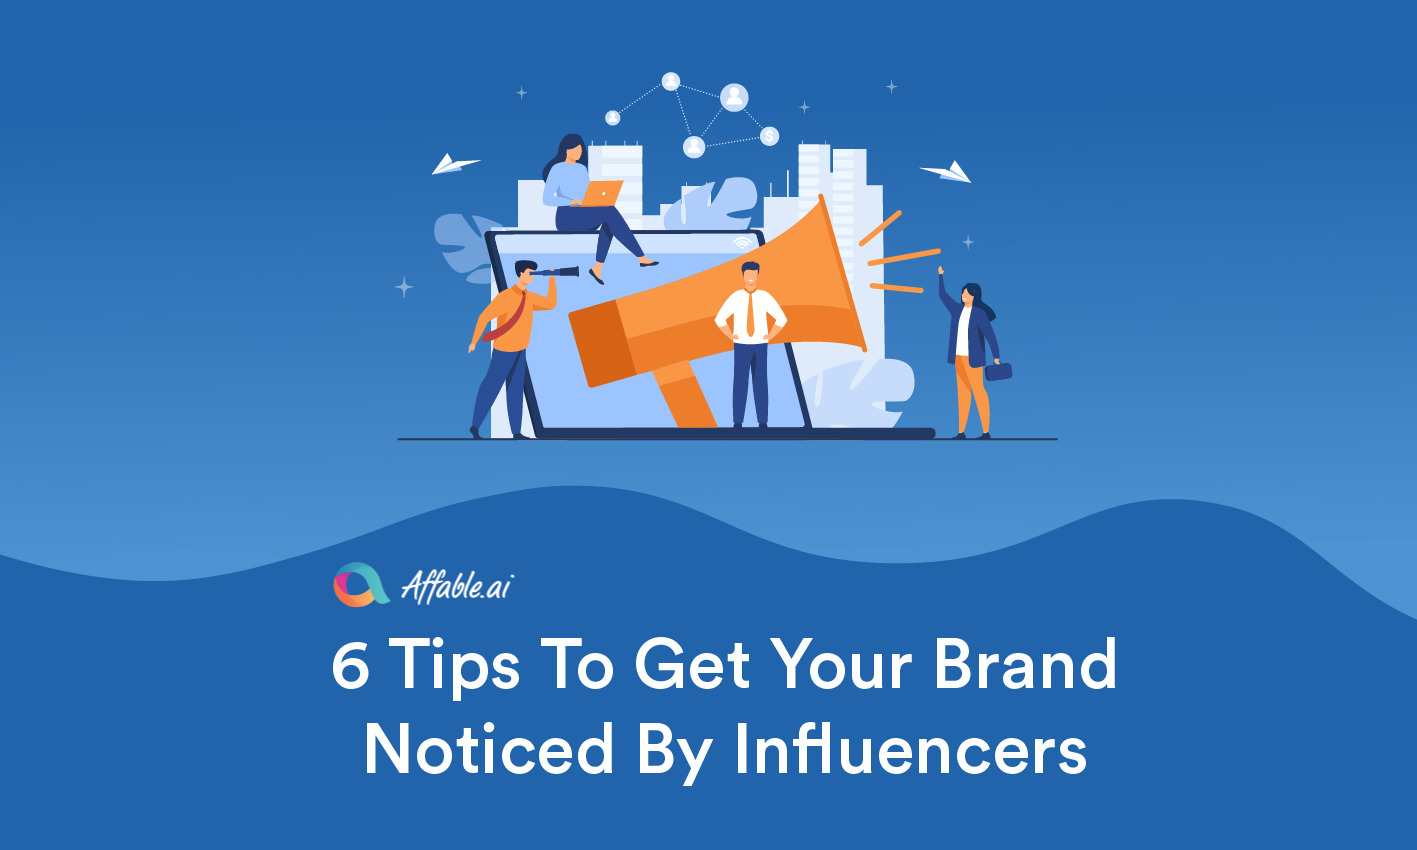 6 Tips to Get Your Brand Noticed by Influencers